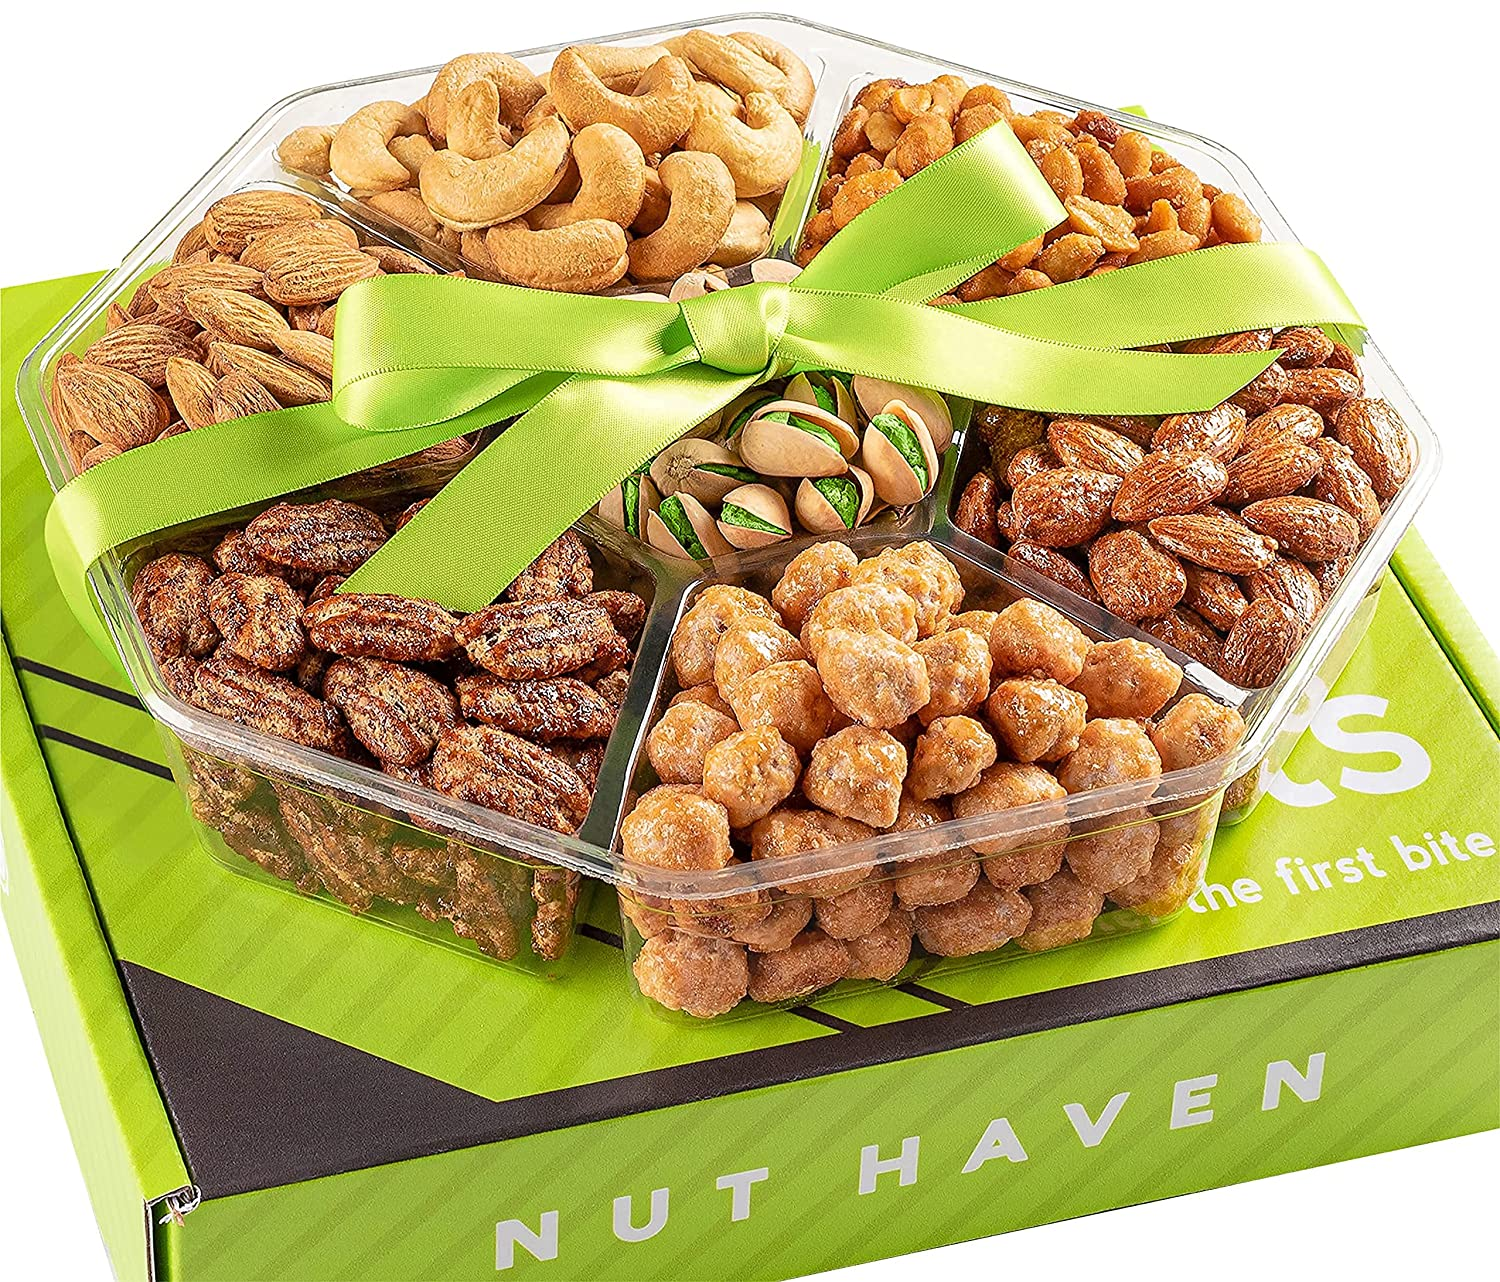 Holiday Nuts Gift Basket - Fresh Sweet & Salty Dry Roasted Gourmet Gift Basket - Food Gift Basket for Holiday, Christmas, Thanksgiving, Fathers Day, Mothers Day, Sympathy, Family, Men & Women